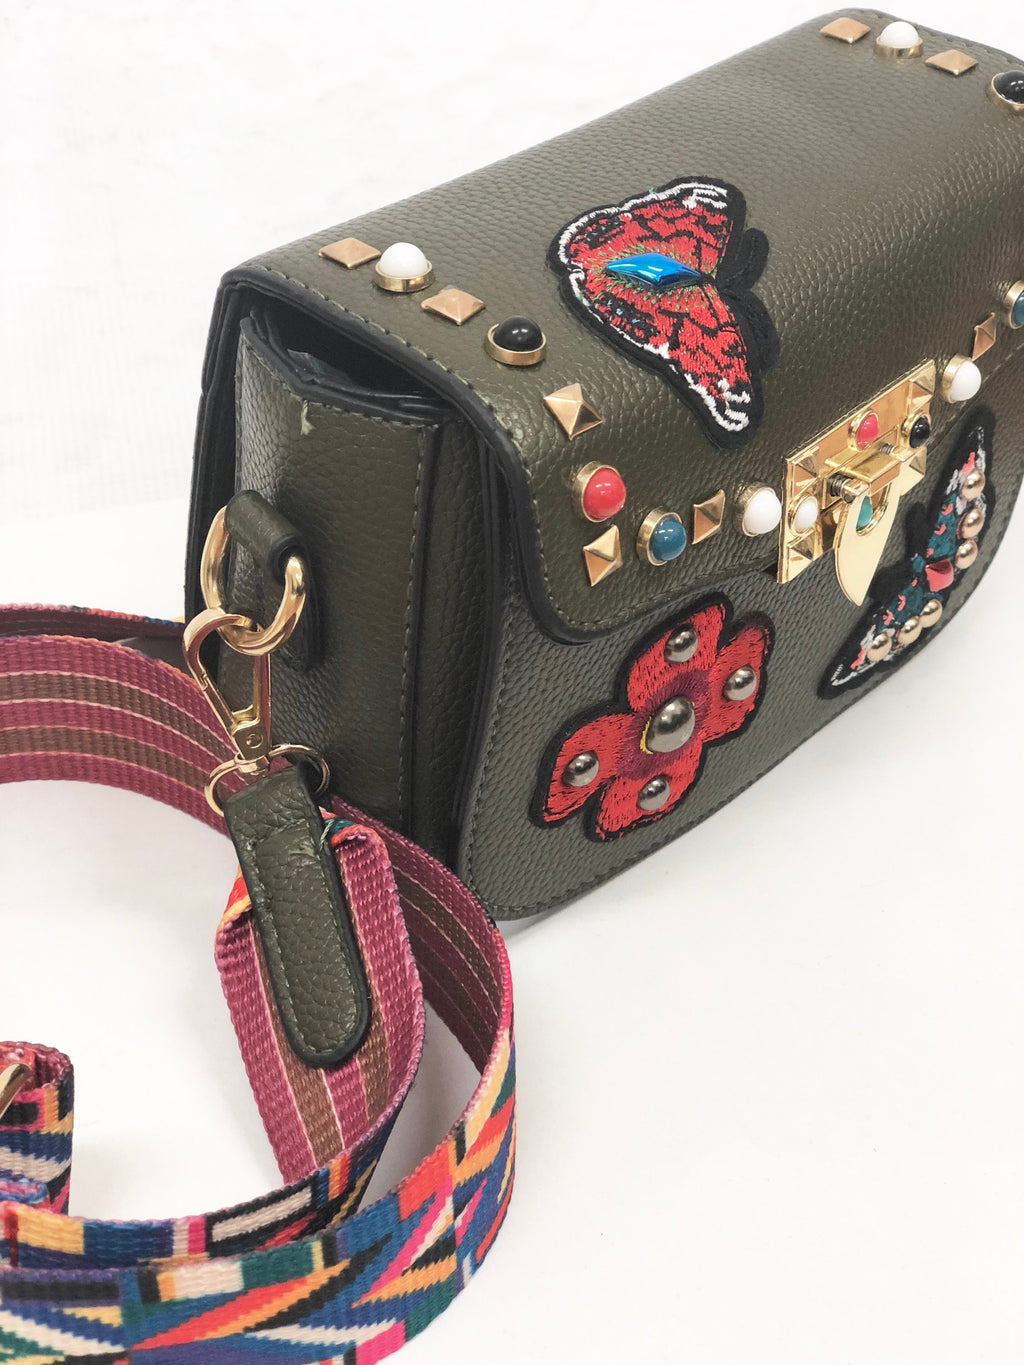 Rocker Handbag with Studs and Patches